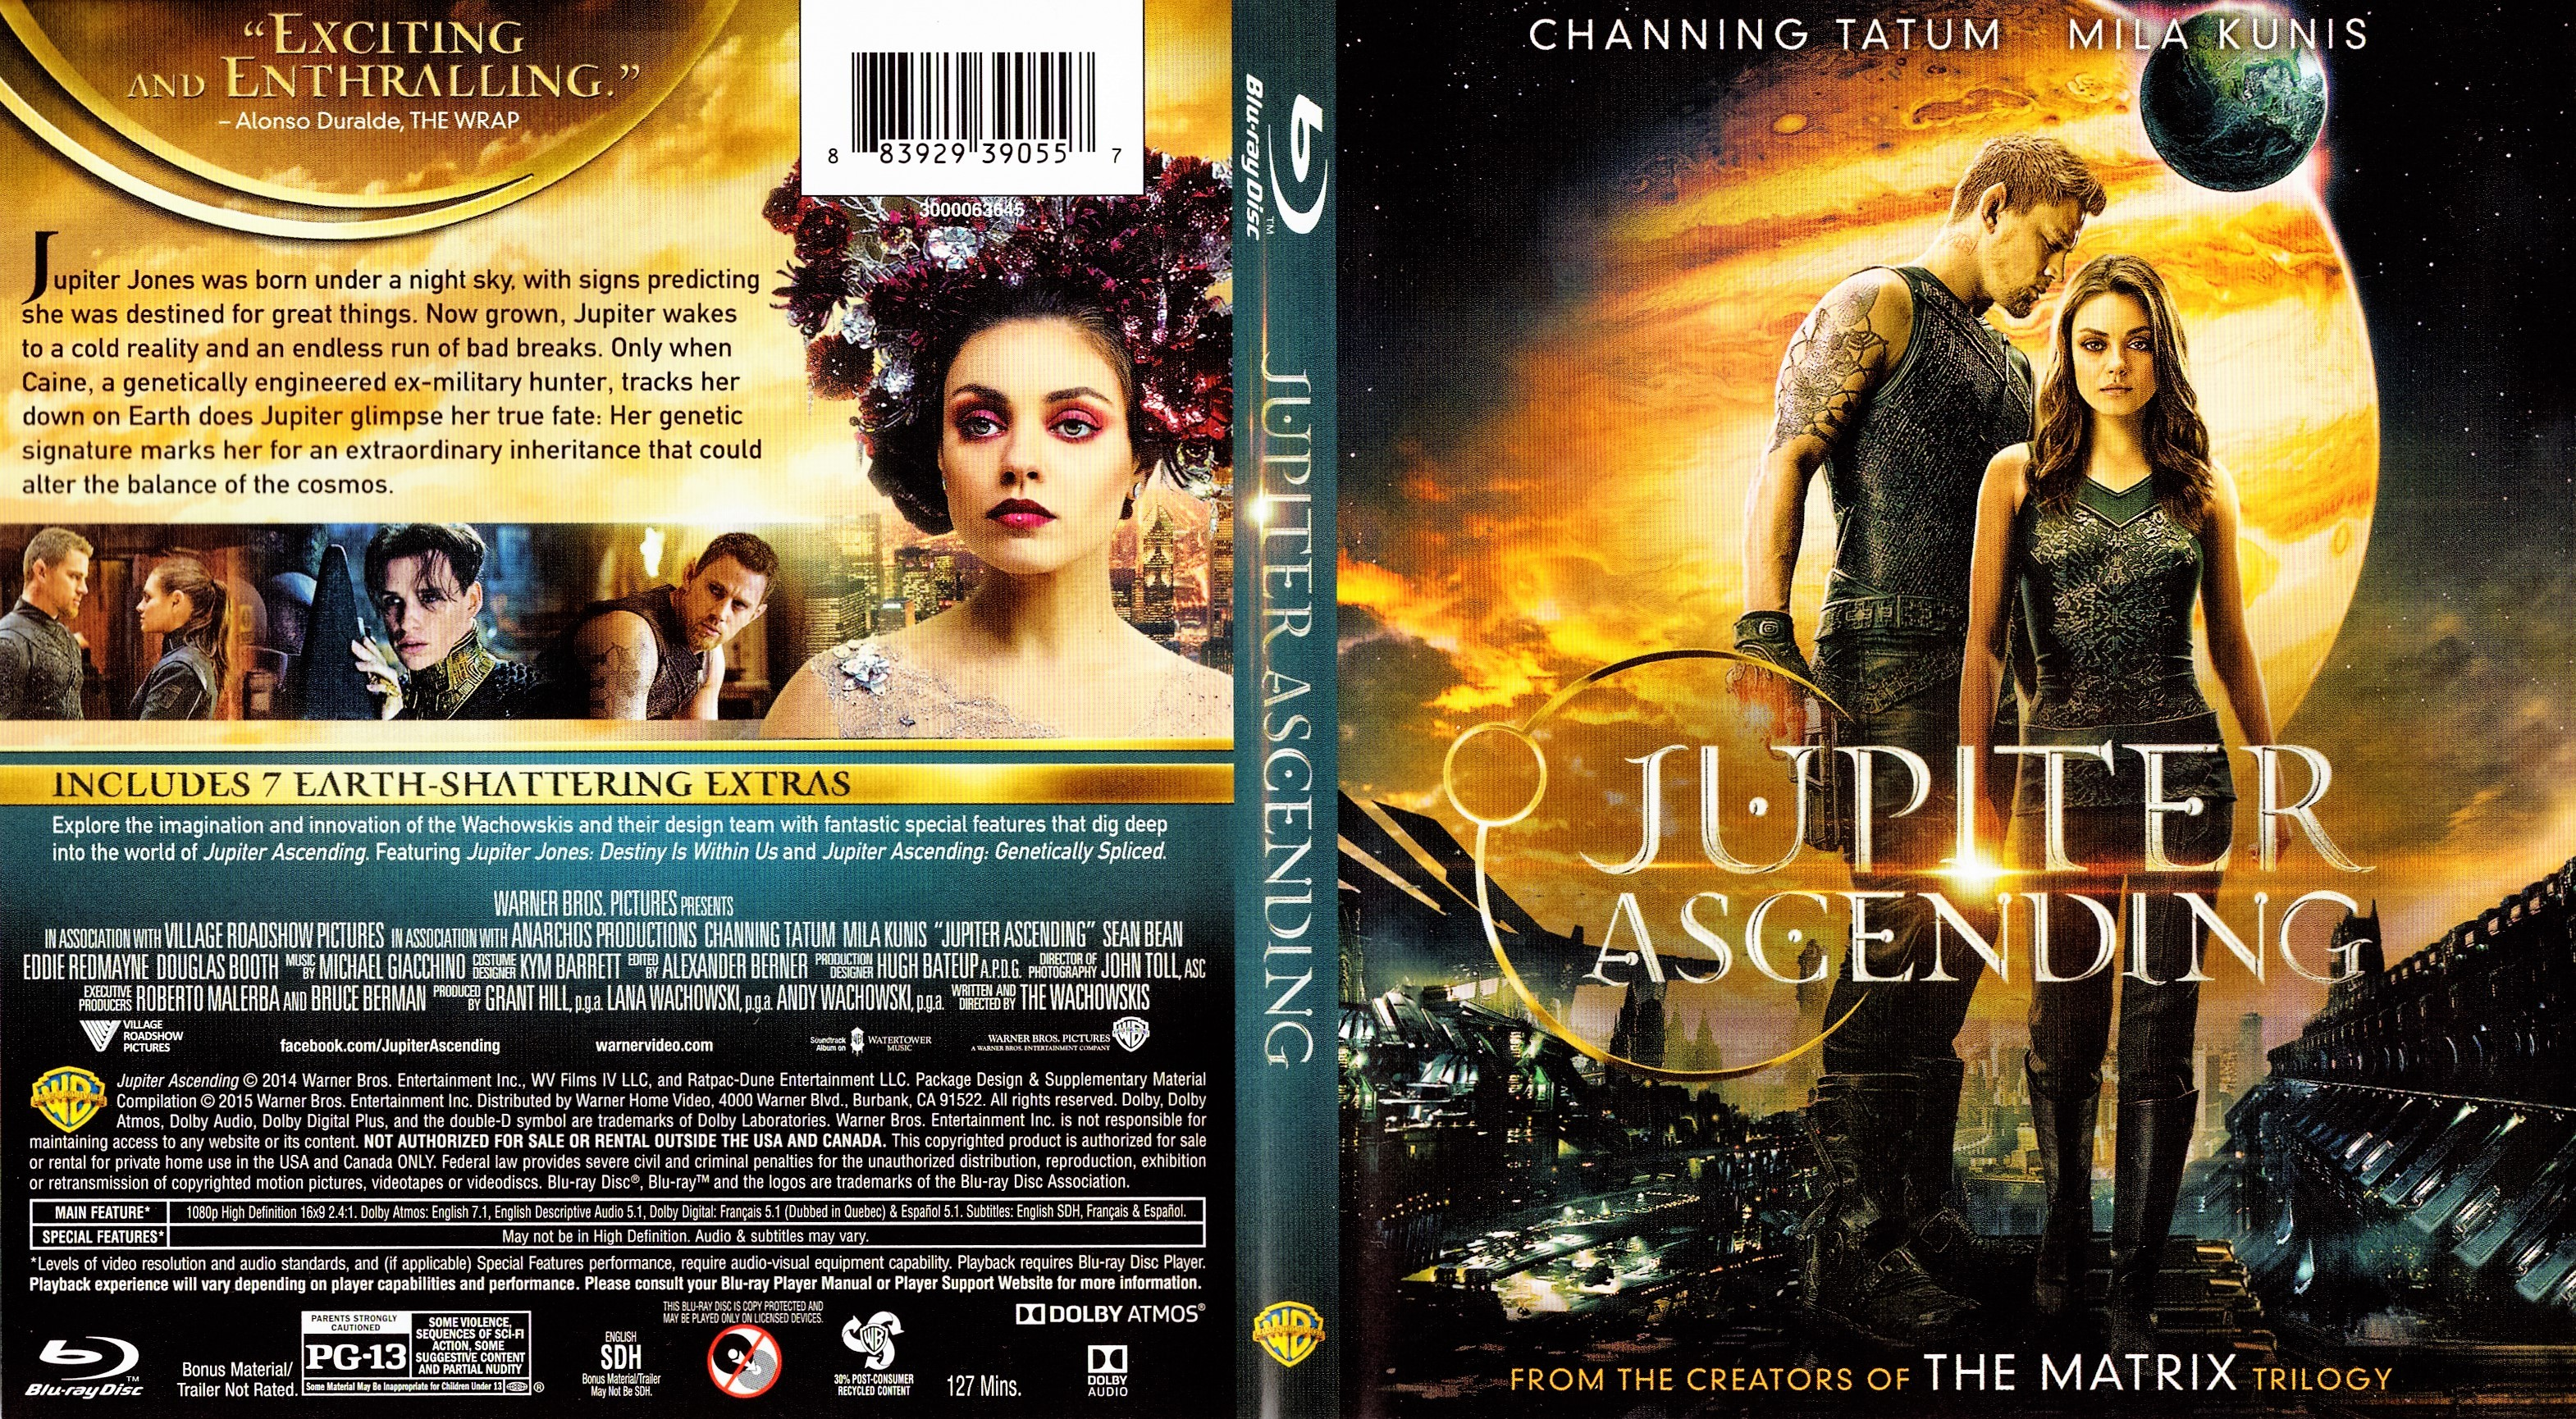 Jupiter Ascending 2015 R1 Blu Ray Dvd Covers Cover Century Over 500 000 Album Art Covers For Free